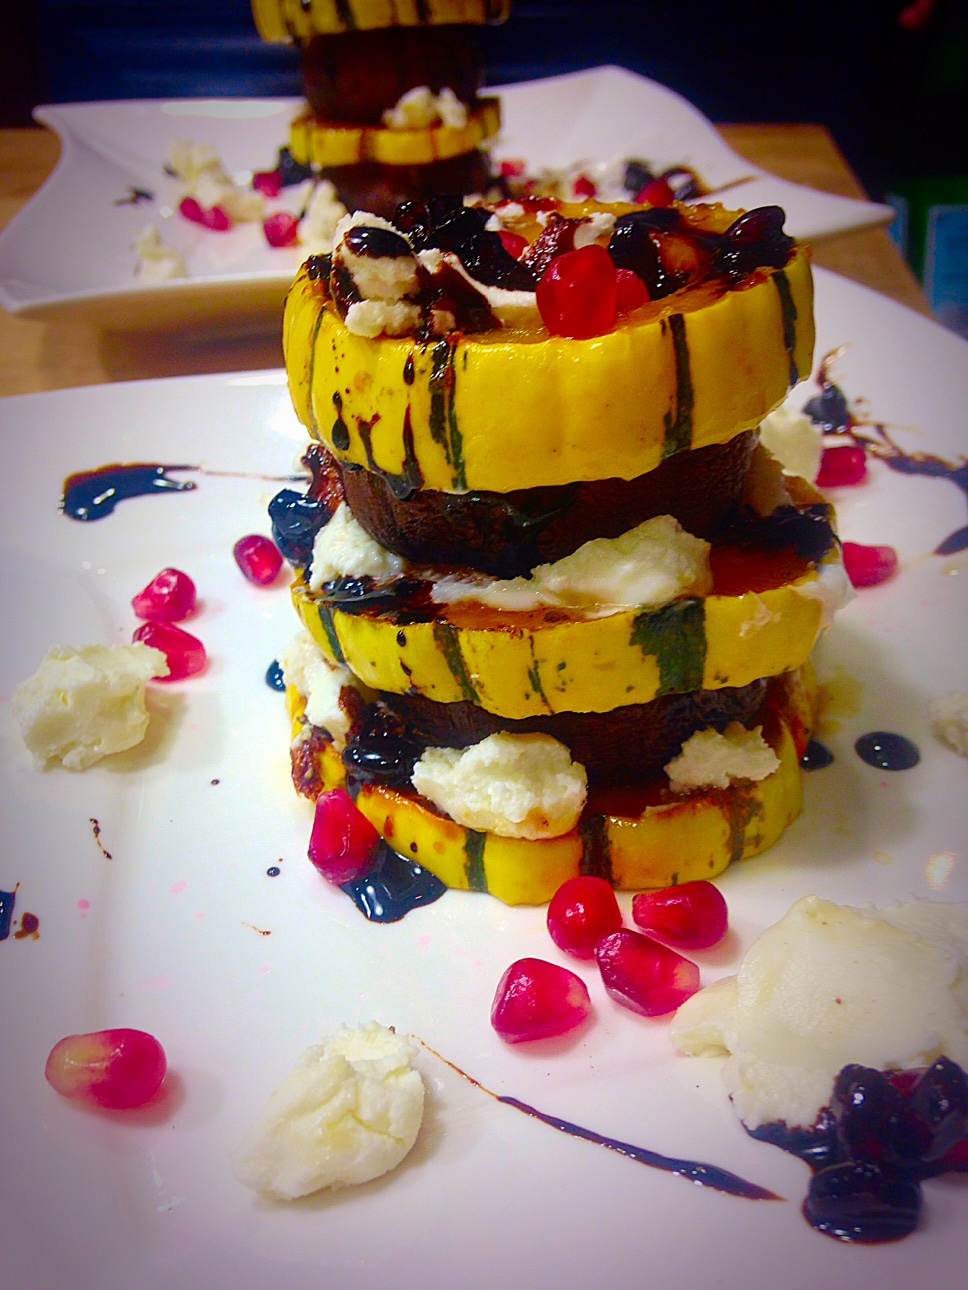 Candied Delicata Squash and Portobello Mushroom Salad with Goat Cheese and Pomegranate Balsamic